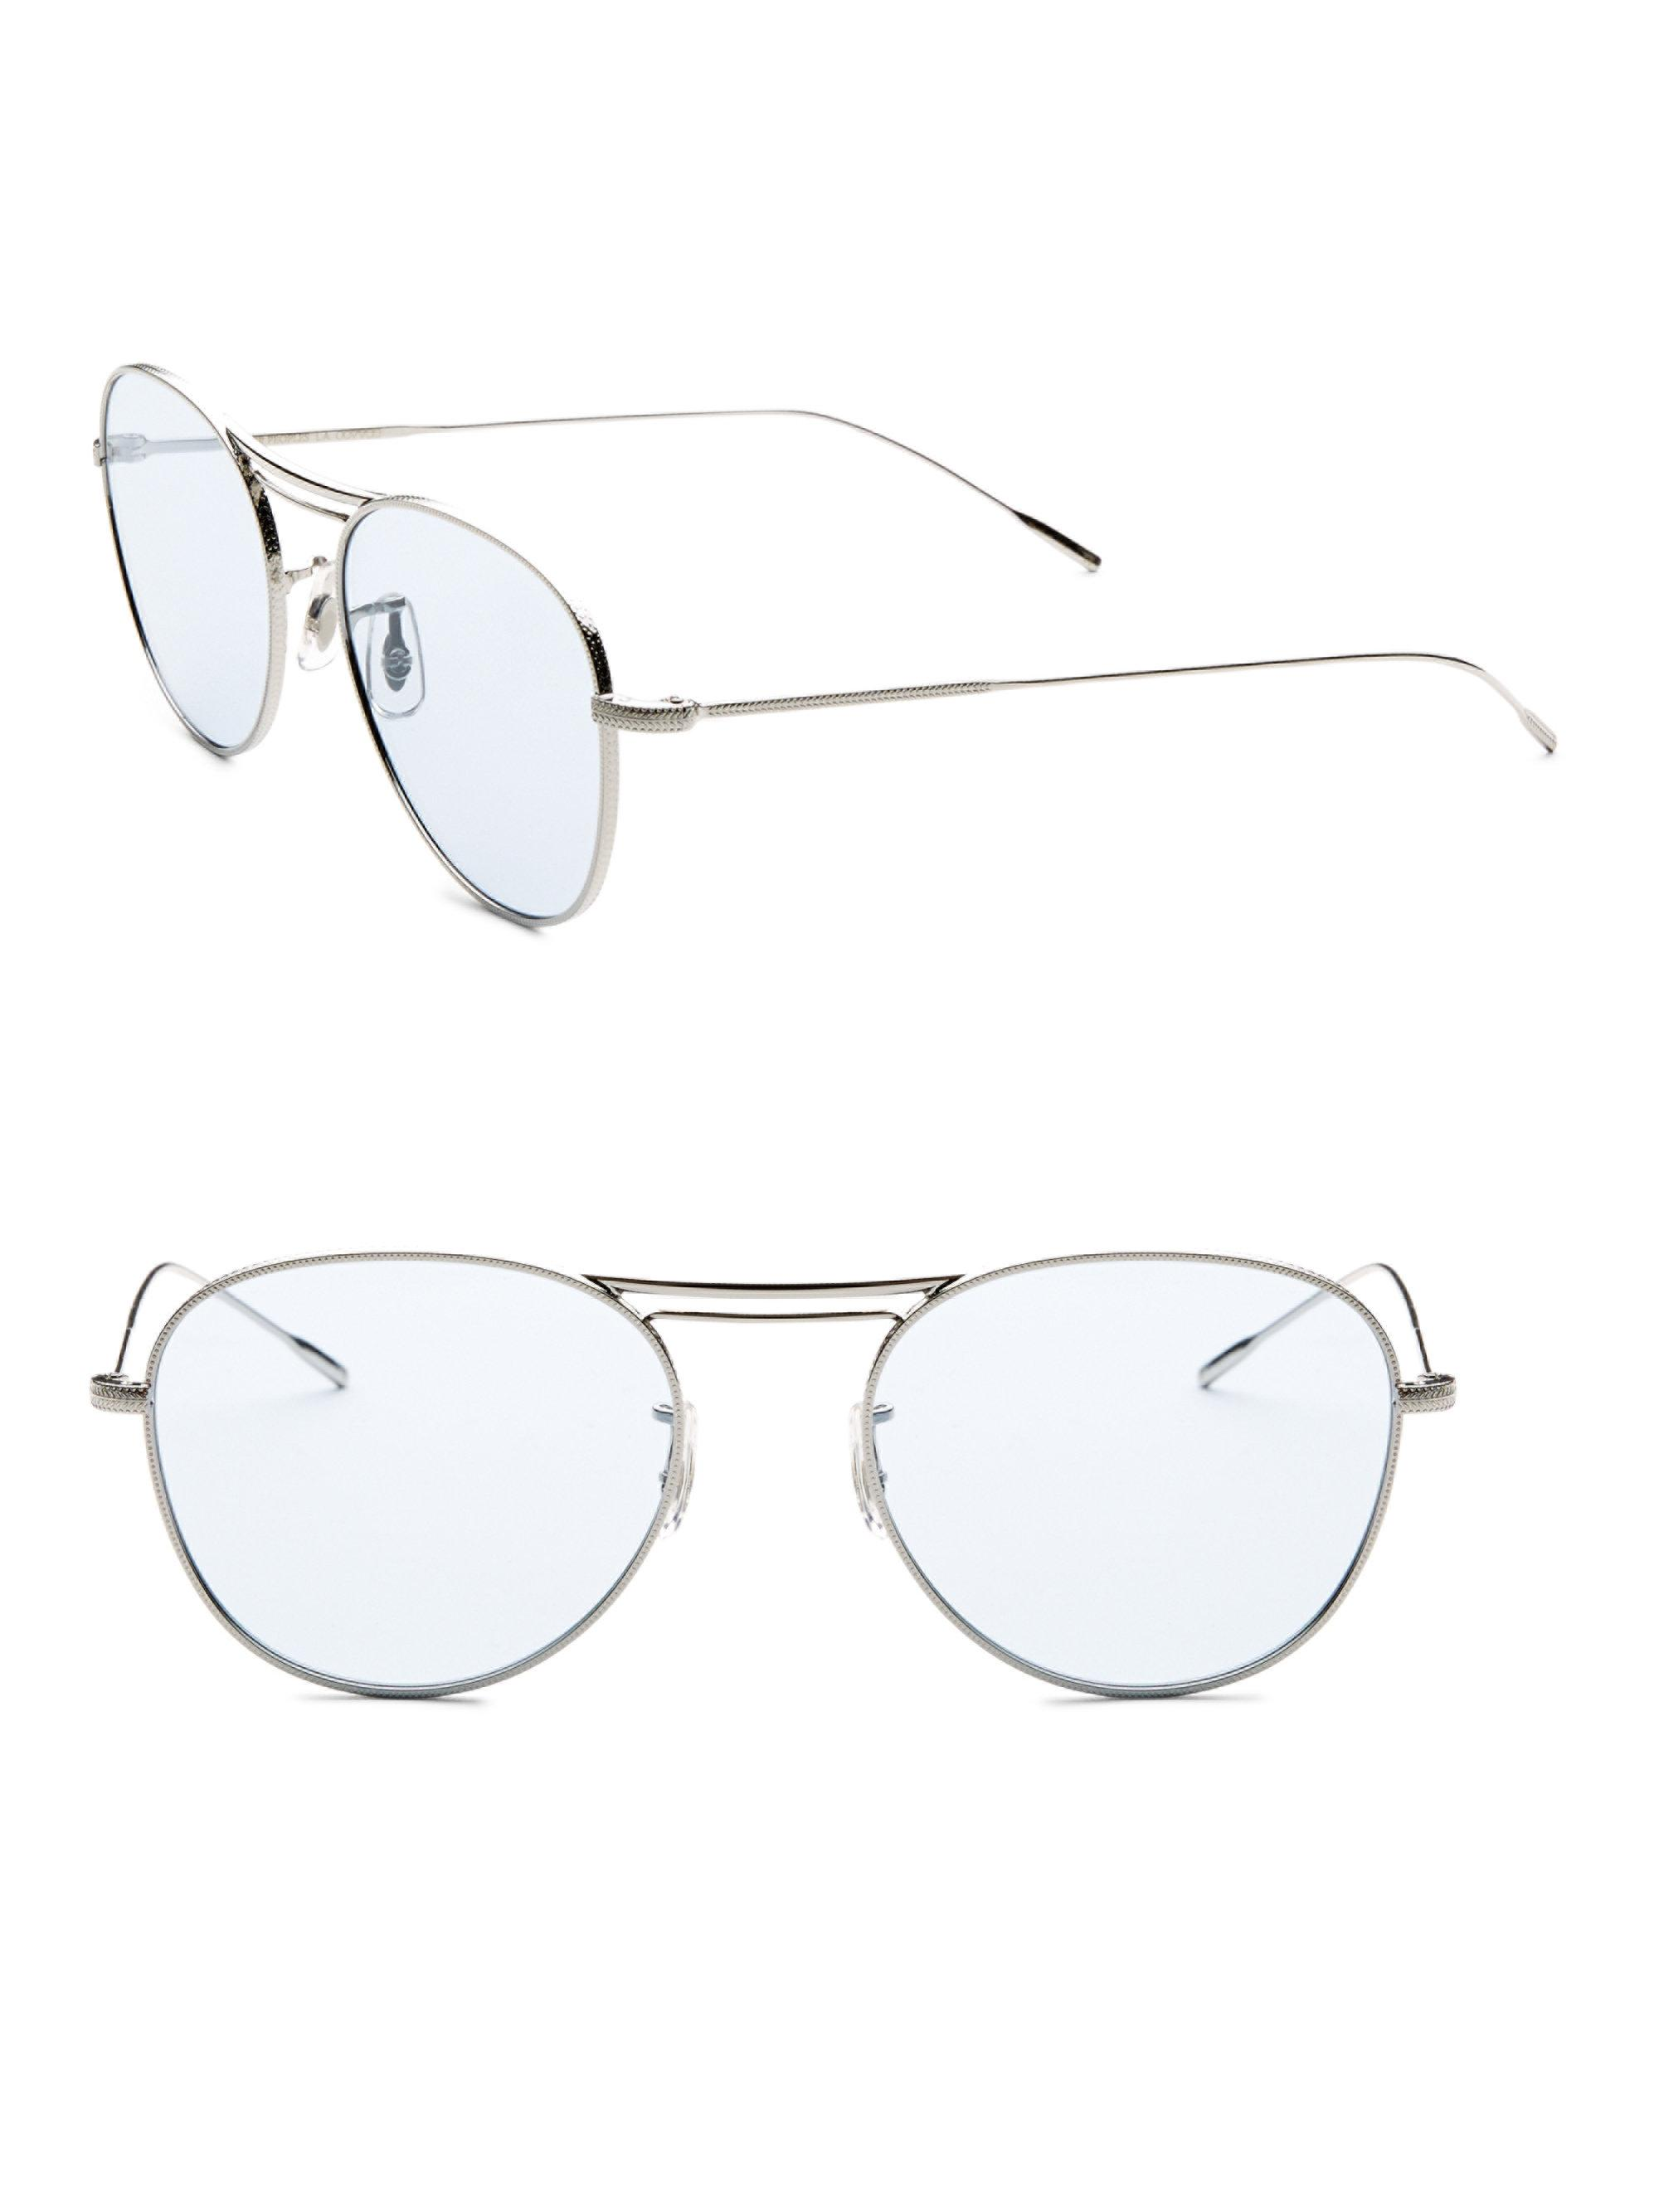 045b3b46e19 Lyst - Oliver Peoples Cade 52mm Tinted Aviator Sunglasses in Blue ...